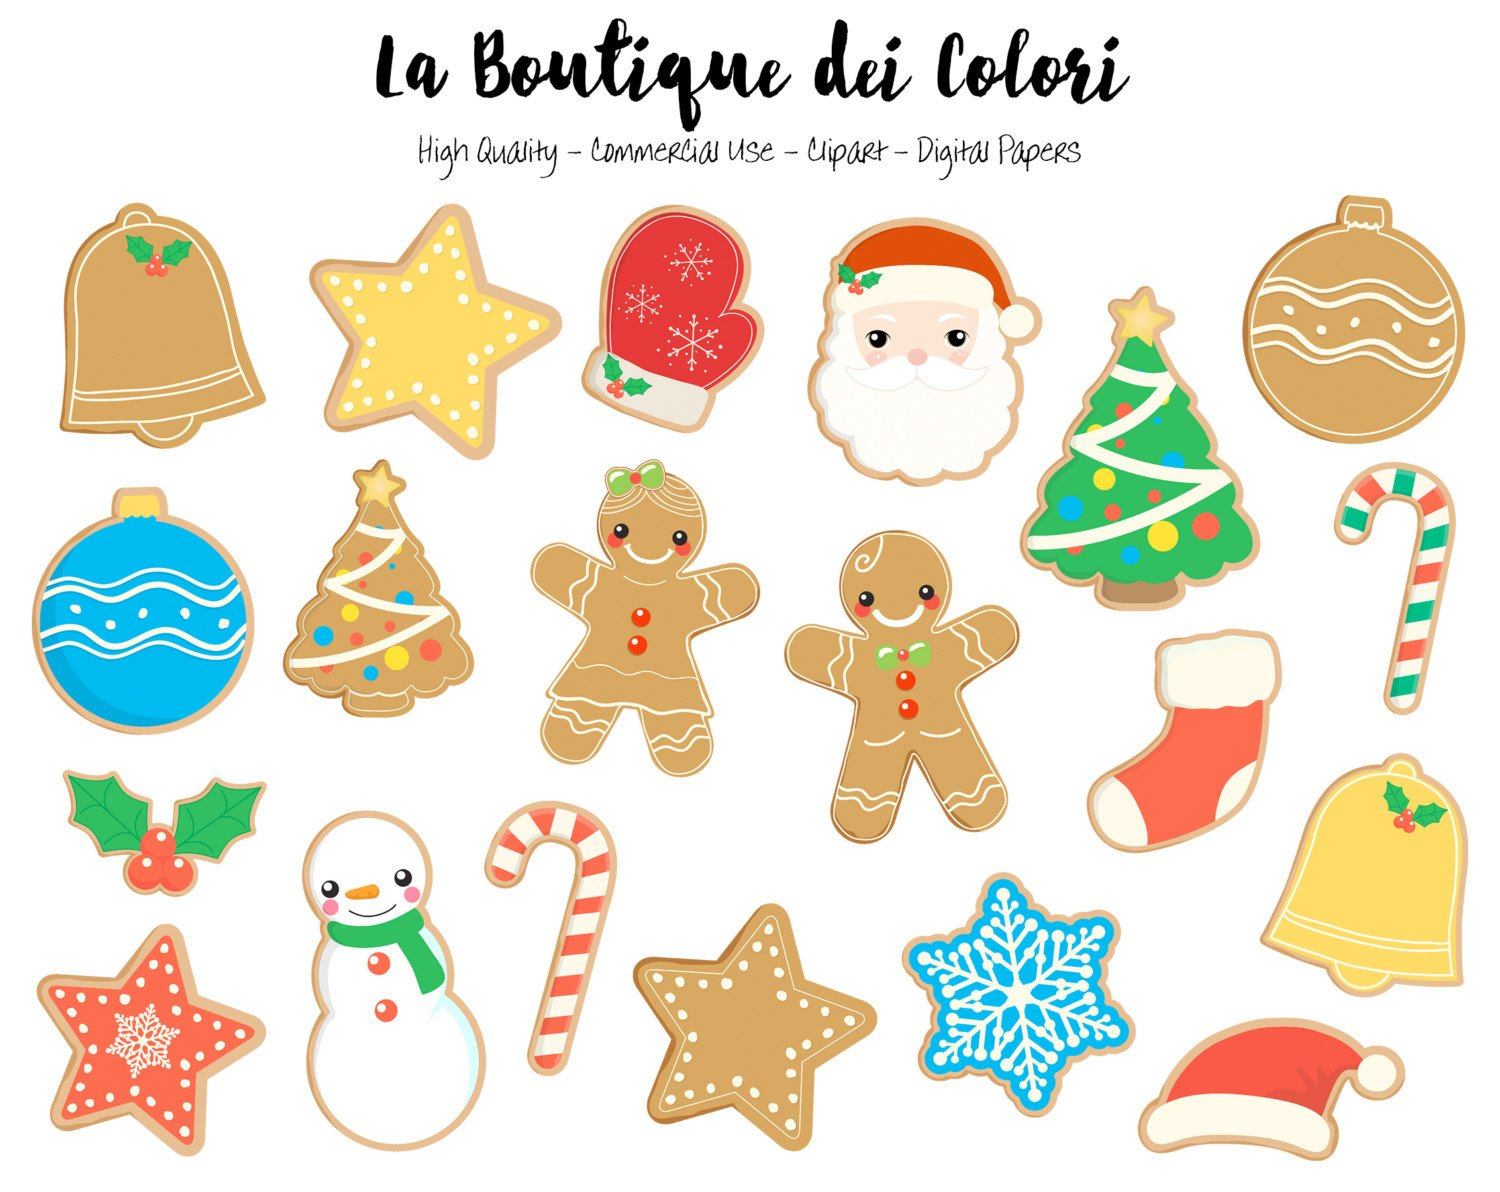 Gingerbread cookie clipart freeuse Christmas Gingerbread Cookies Clipart freeuse